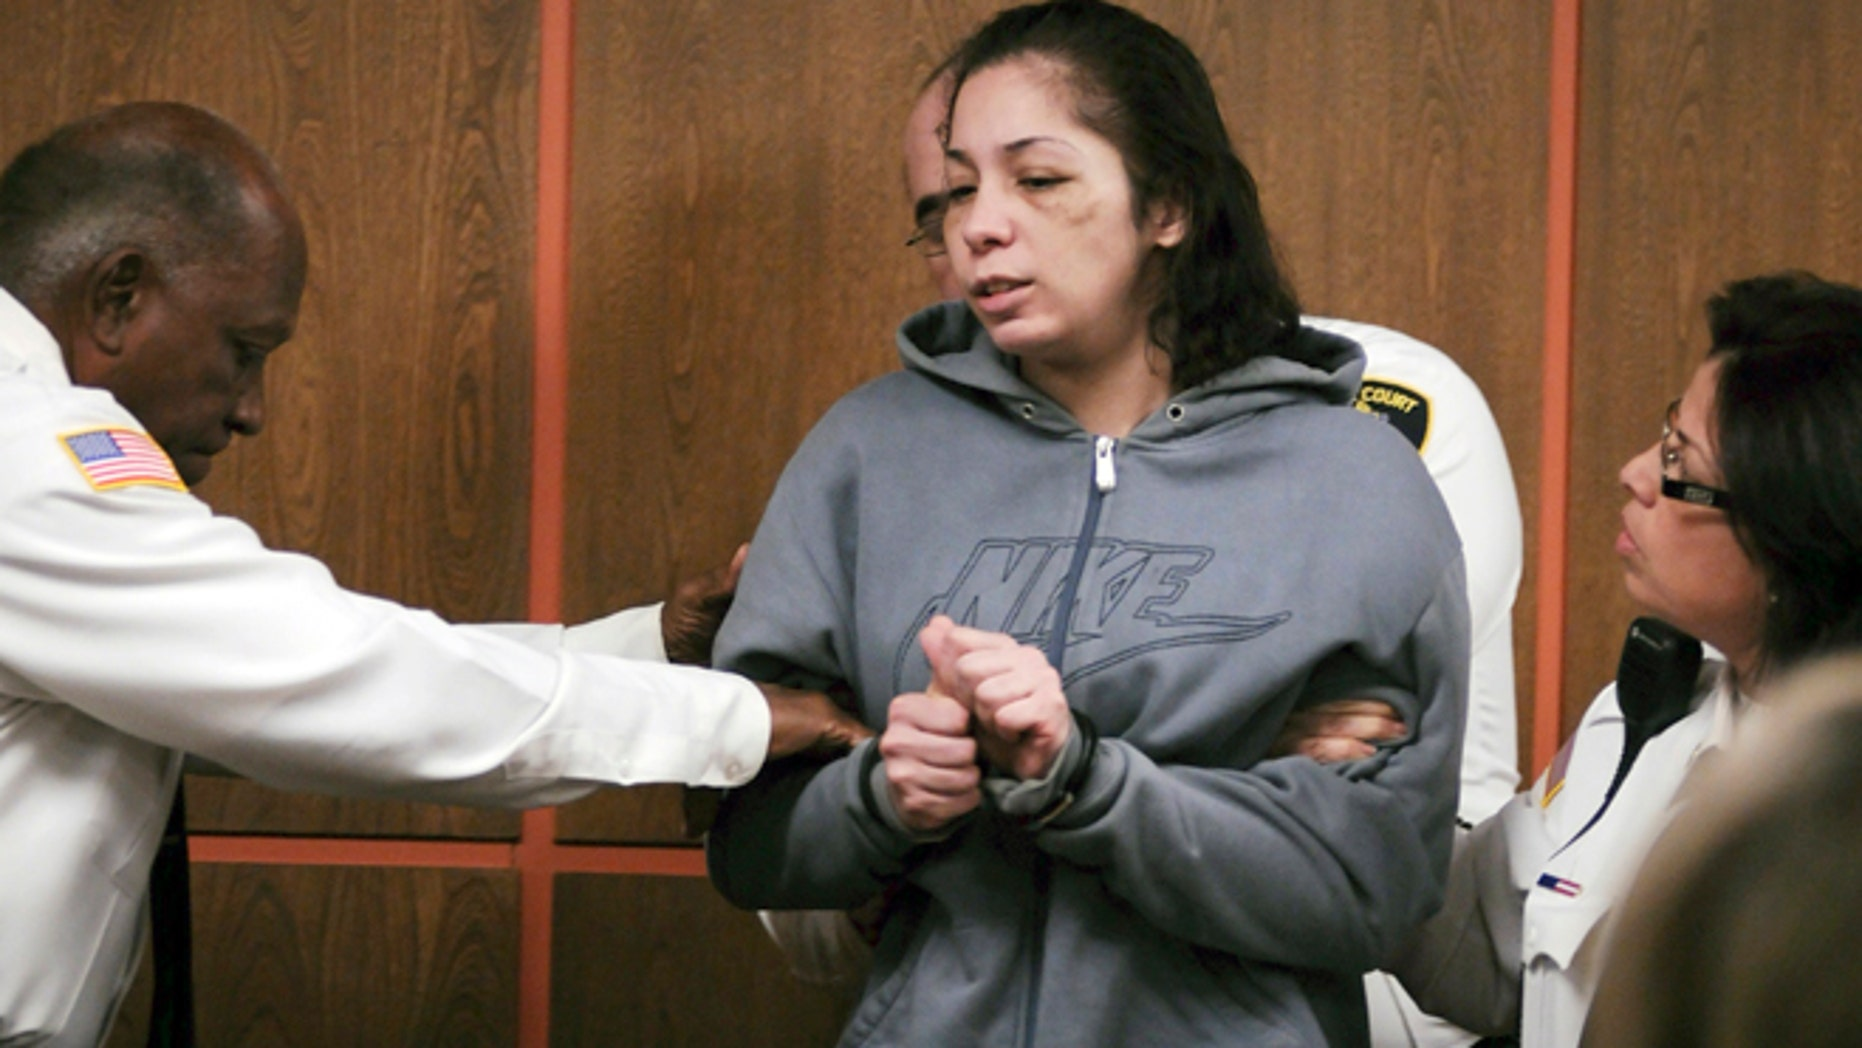 Dec. 17, 2013: Elsa Oliver is escorted into the courtroom for her arraignment in Fitchburg District Court, in Fitchburg, Mass., on charges of reckless endangerment of a child and accessory after the fact of assault, in regards to her missing 5-year-old son, Jeremiah Oliver.